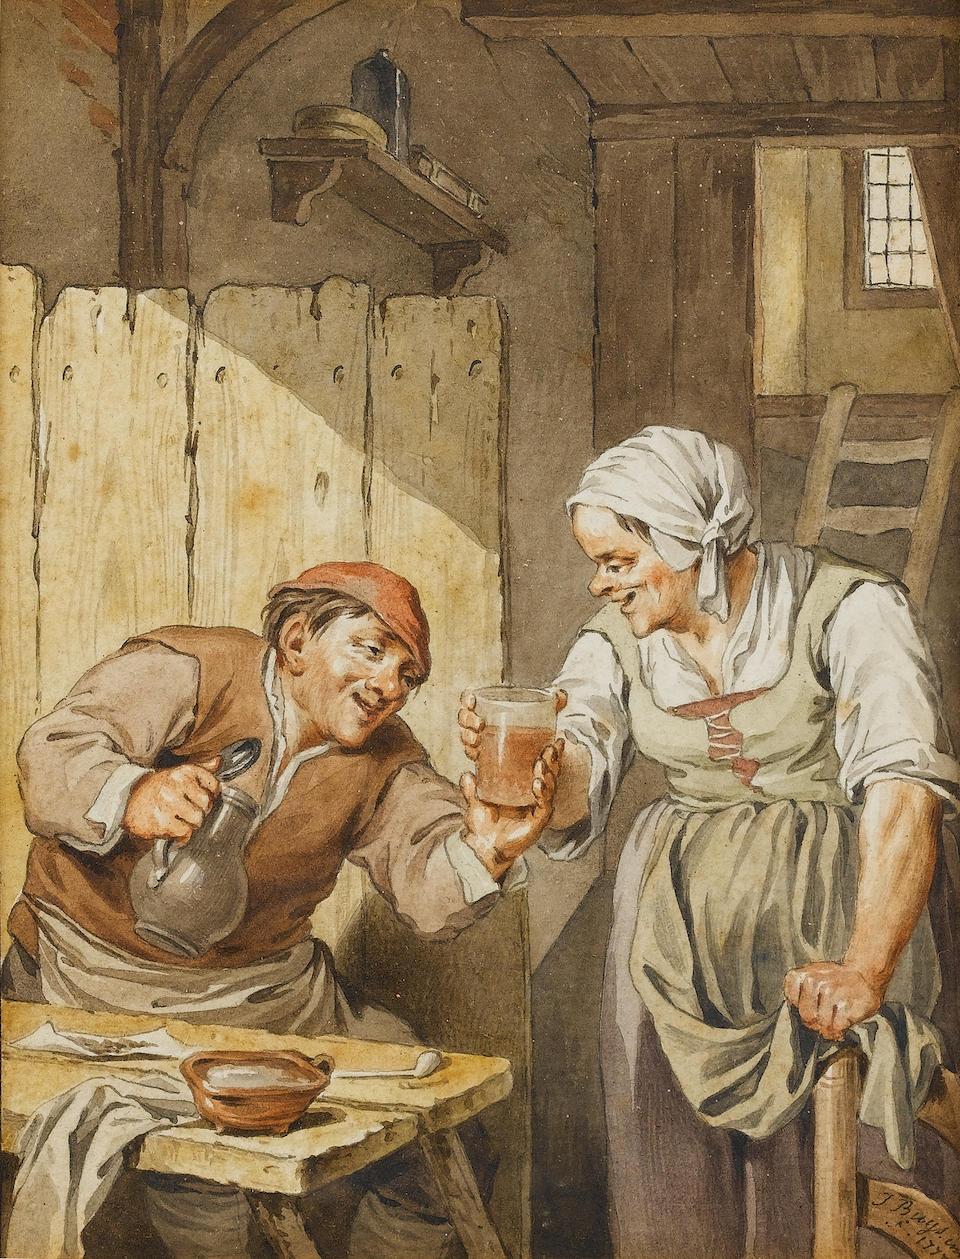 Jacobus Buys (Amsterdam 1724-1801) A tavern interior with peasants seated at a table; and A tavern interior with a peasant holding a glass of ale 146 x 112 mm. (2)